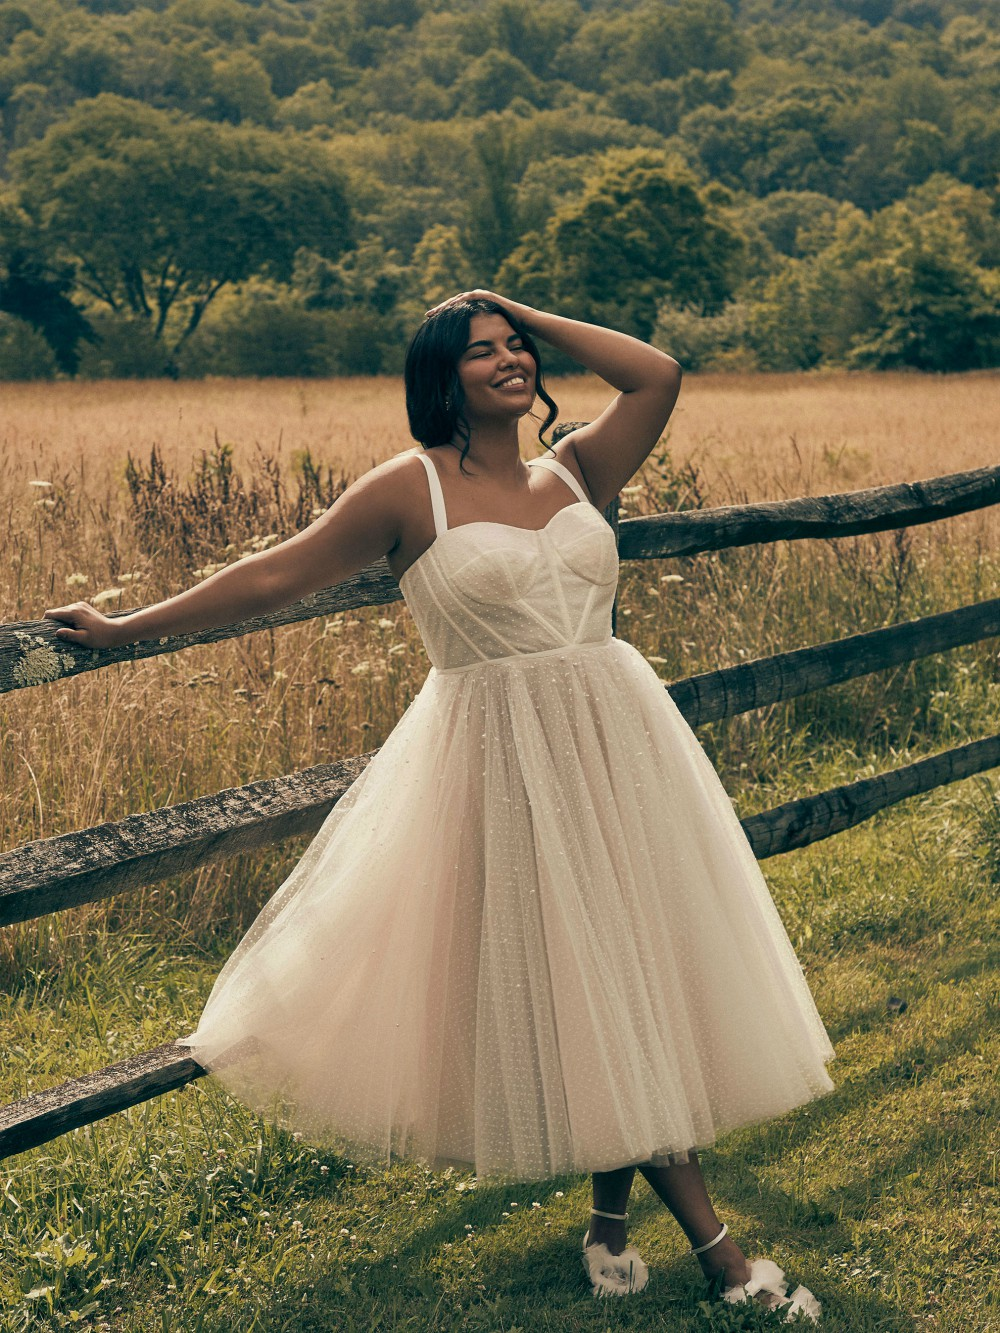 BHLDN's new Plus collection includes sizes up to 26W.